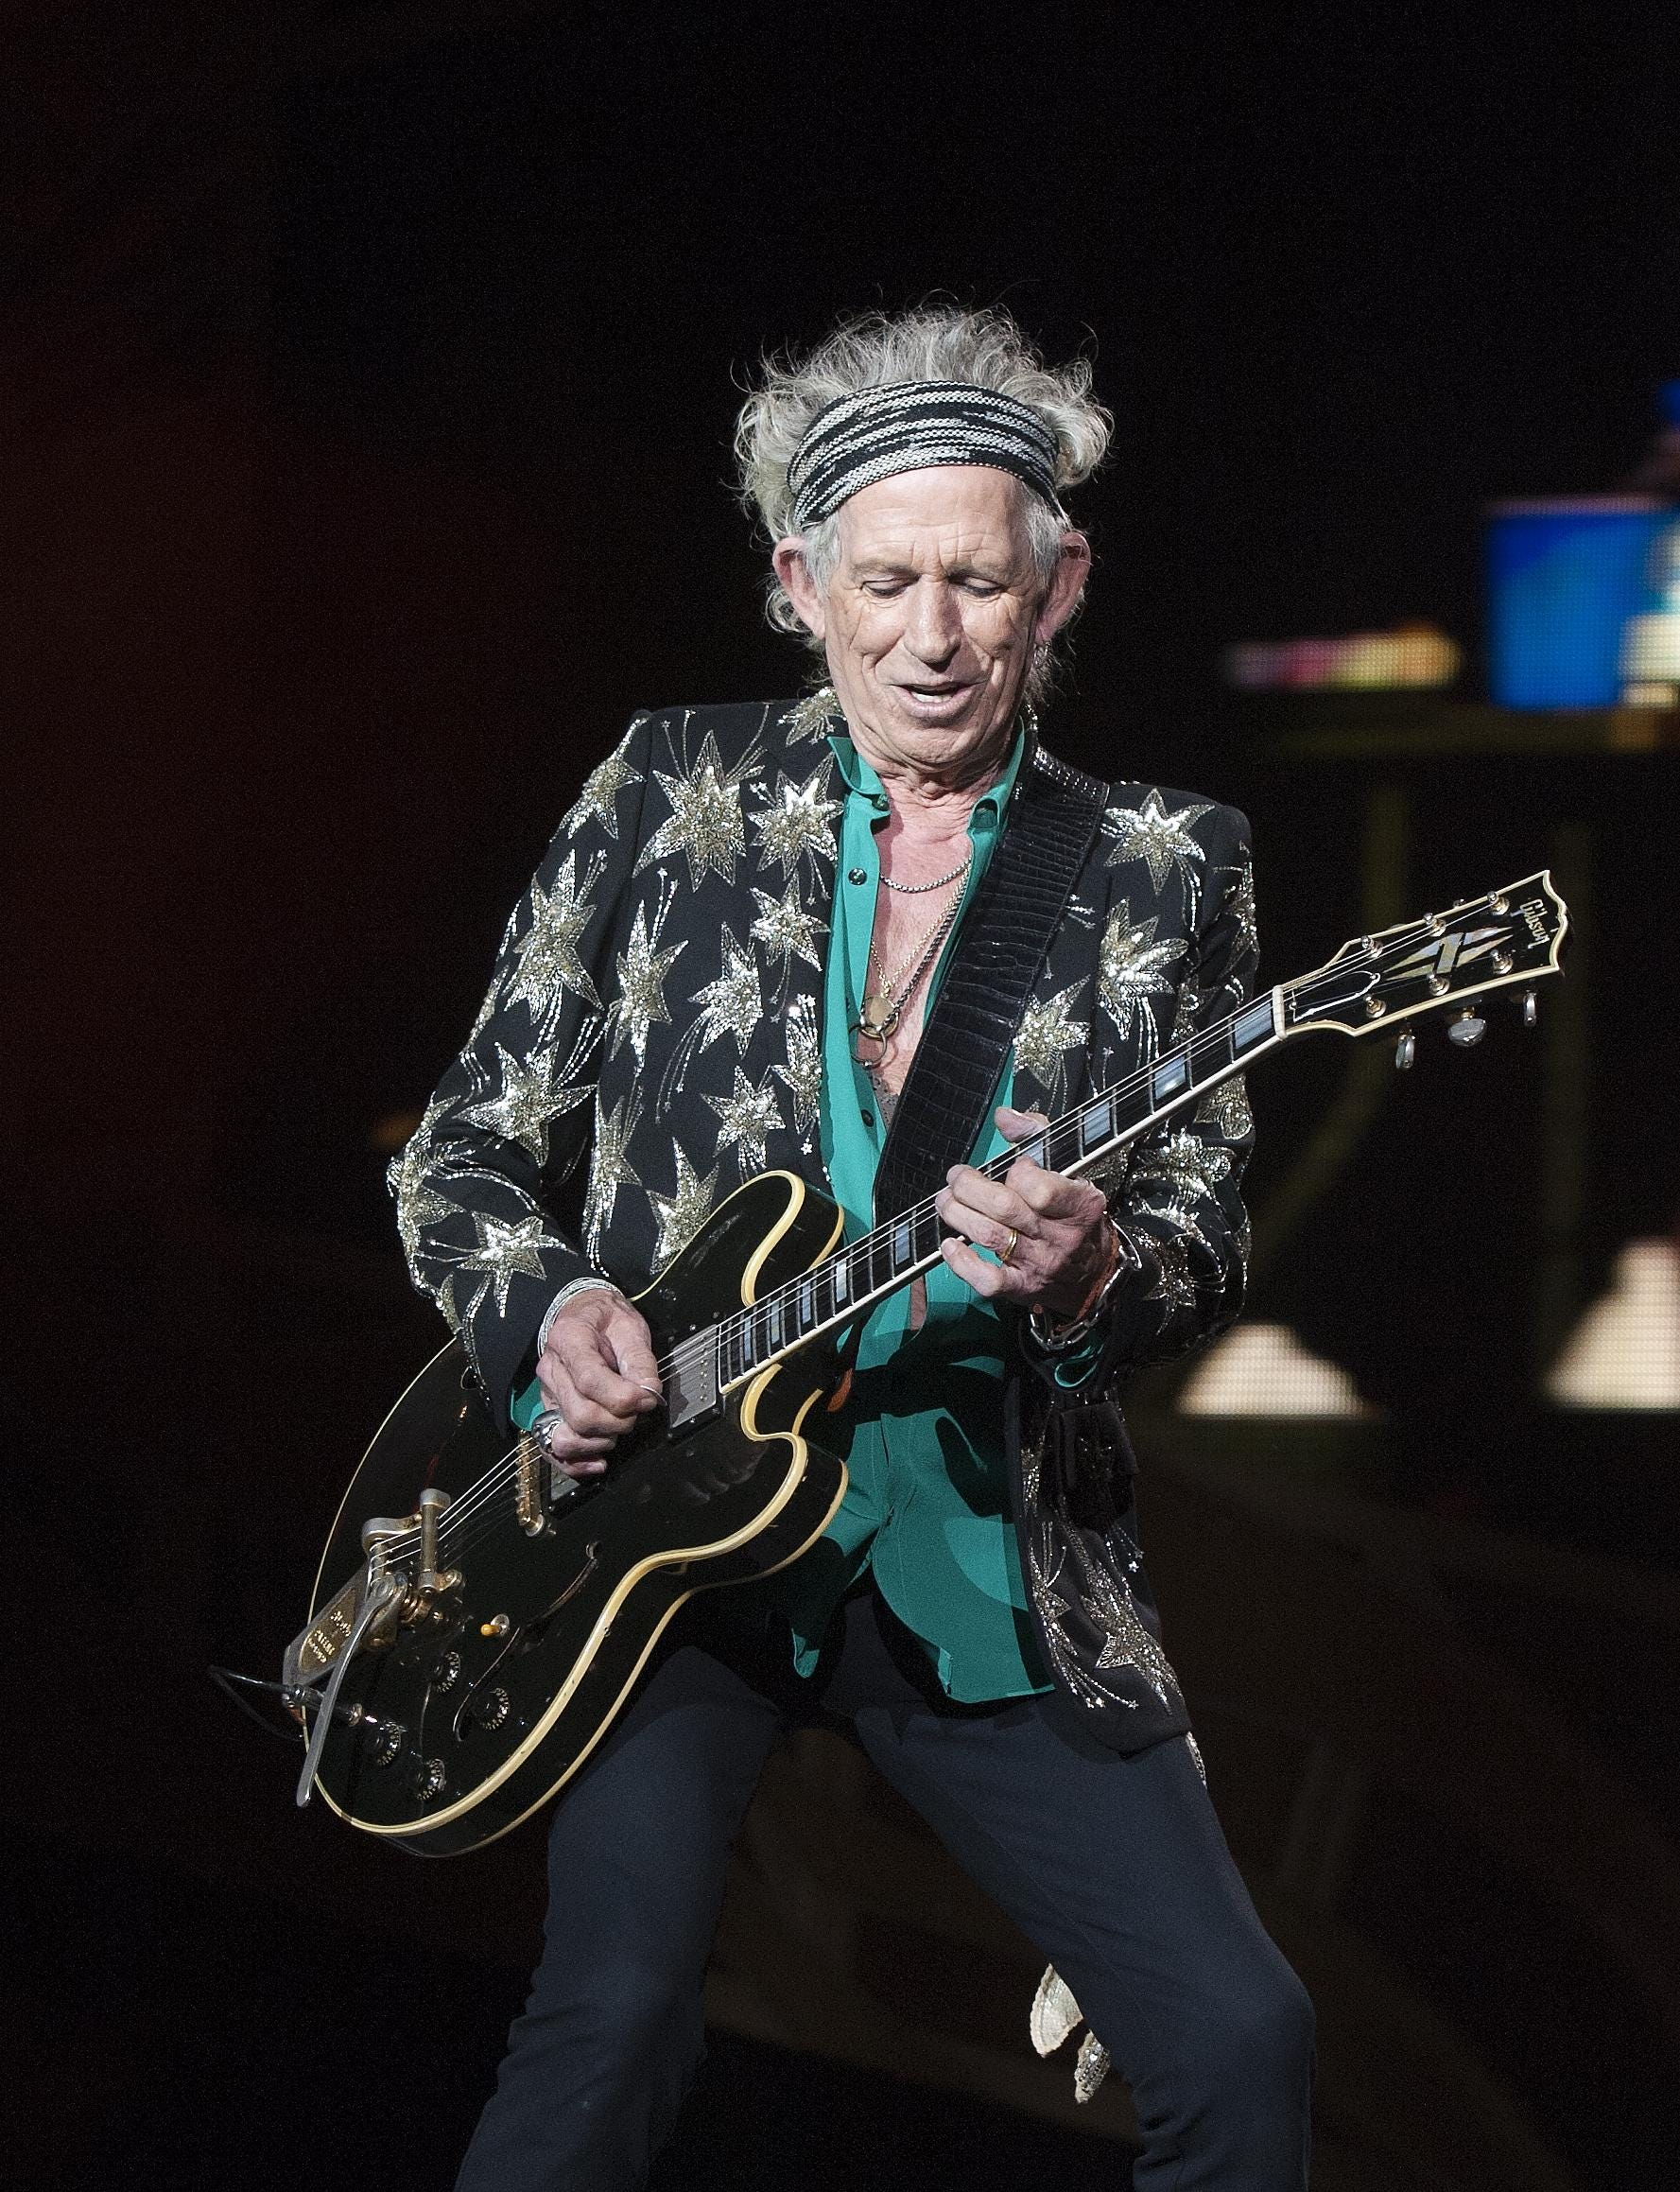 Grapevine: Keith Richards quit drinking